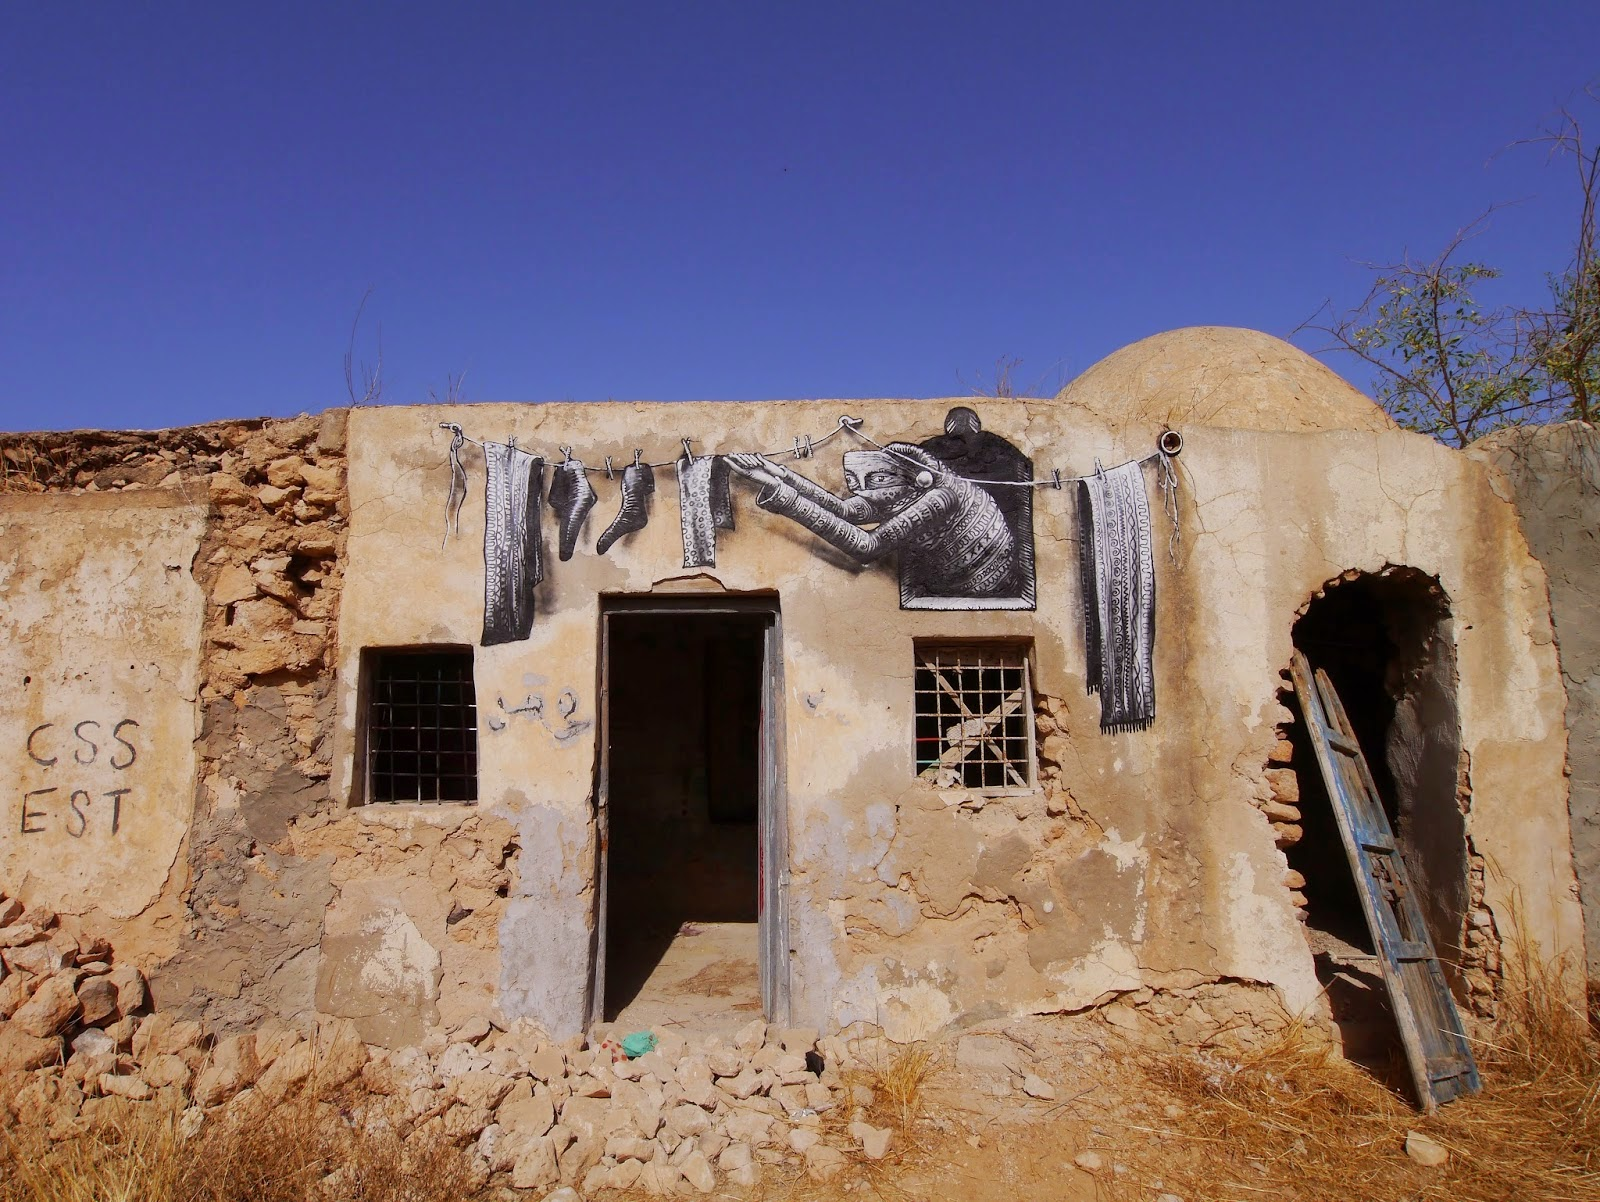 Phlegm is currently in North Africa where he painted in the searing heat in the village Erriadh, on the island of Djerba, Tunisa.